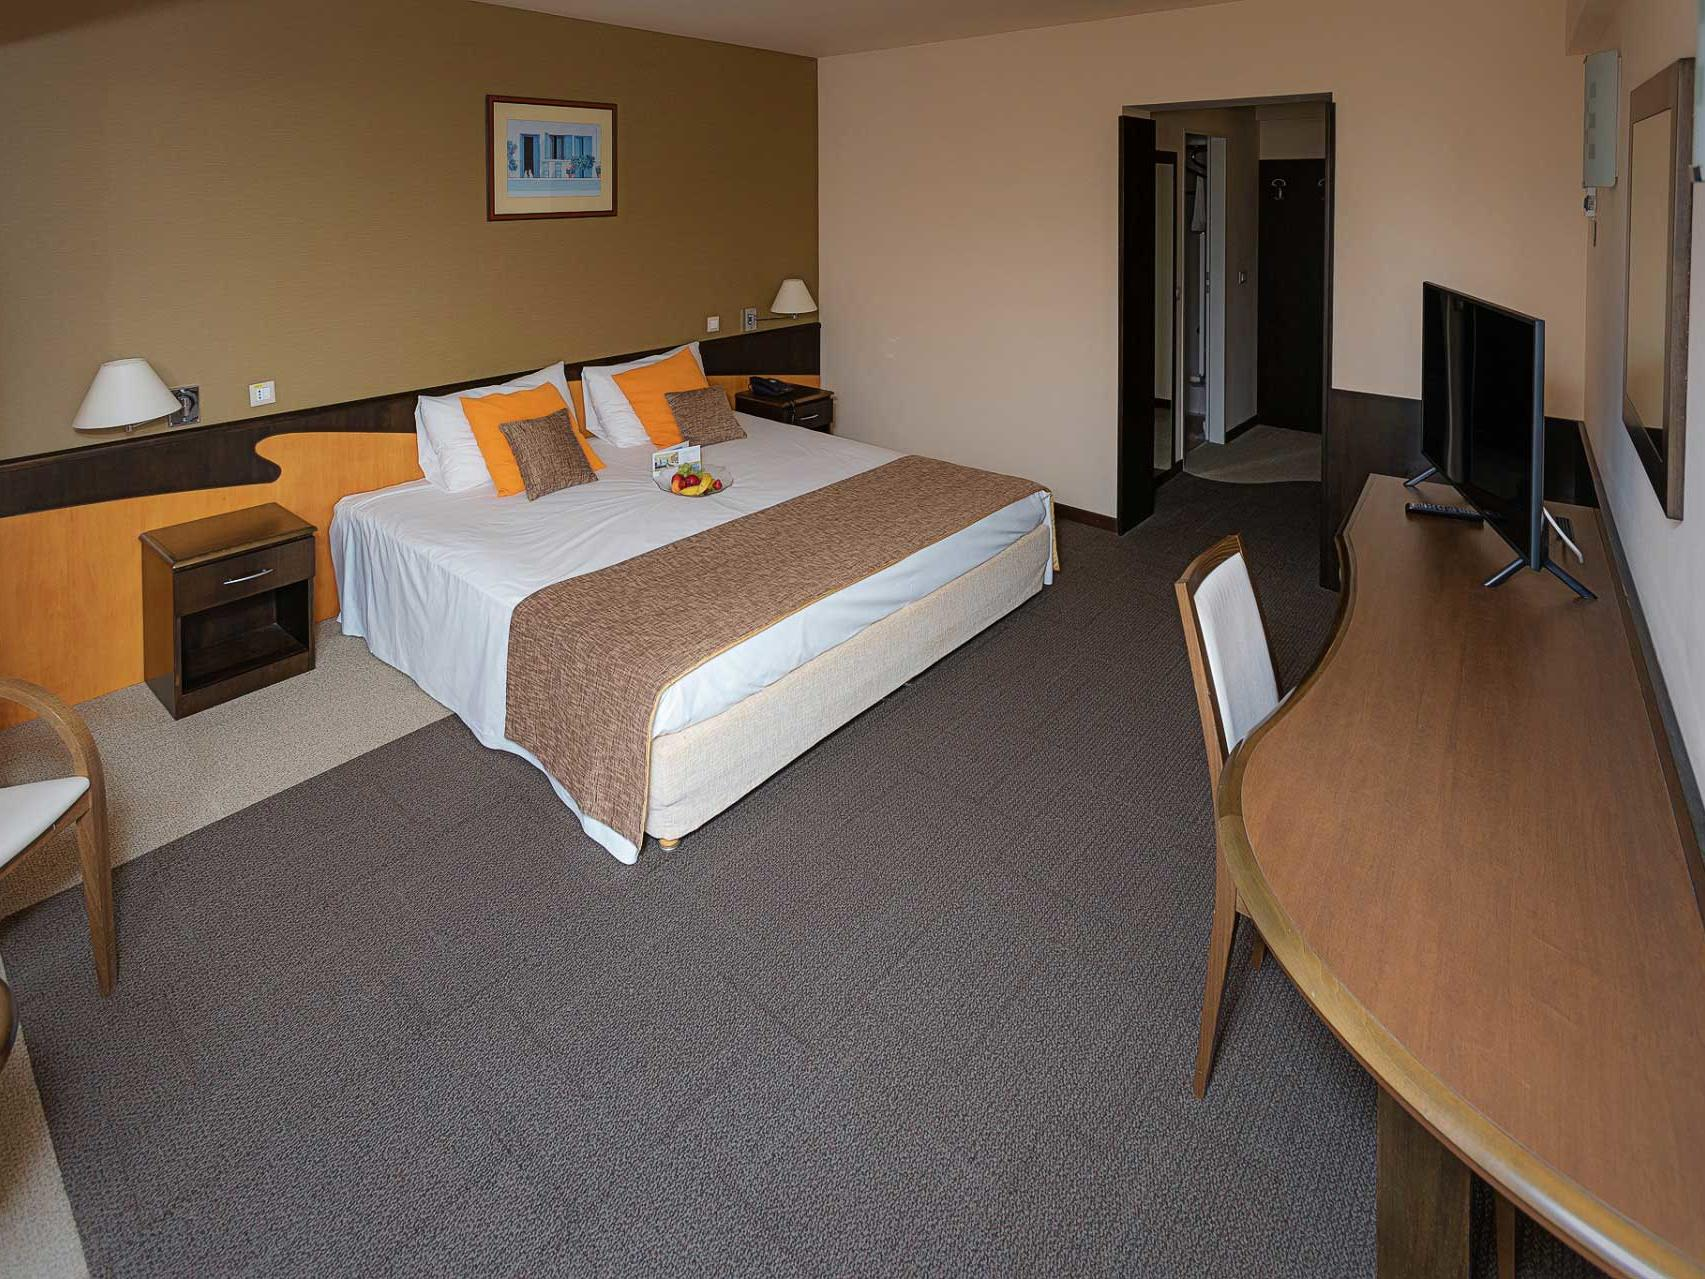 Queen Room at Ana Hotels Europa Eforie Nord